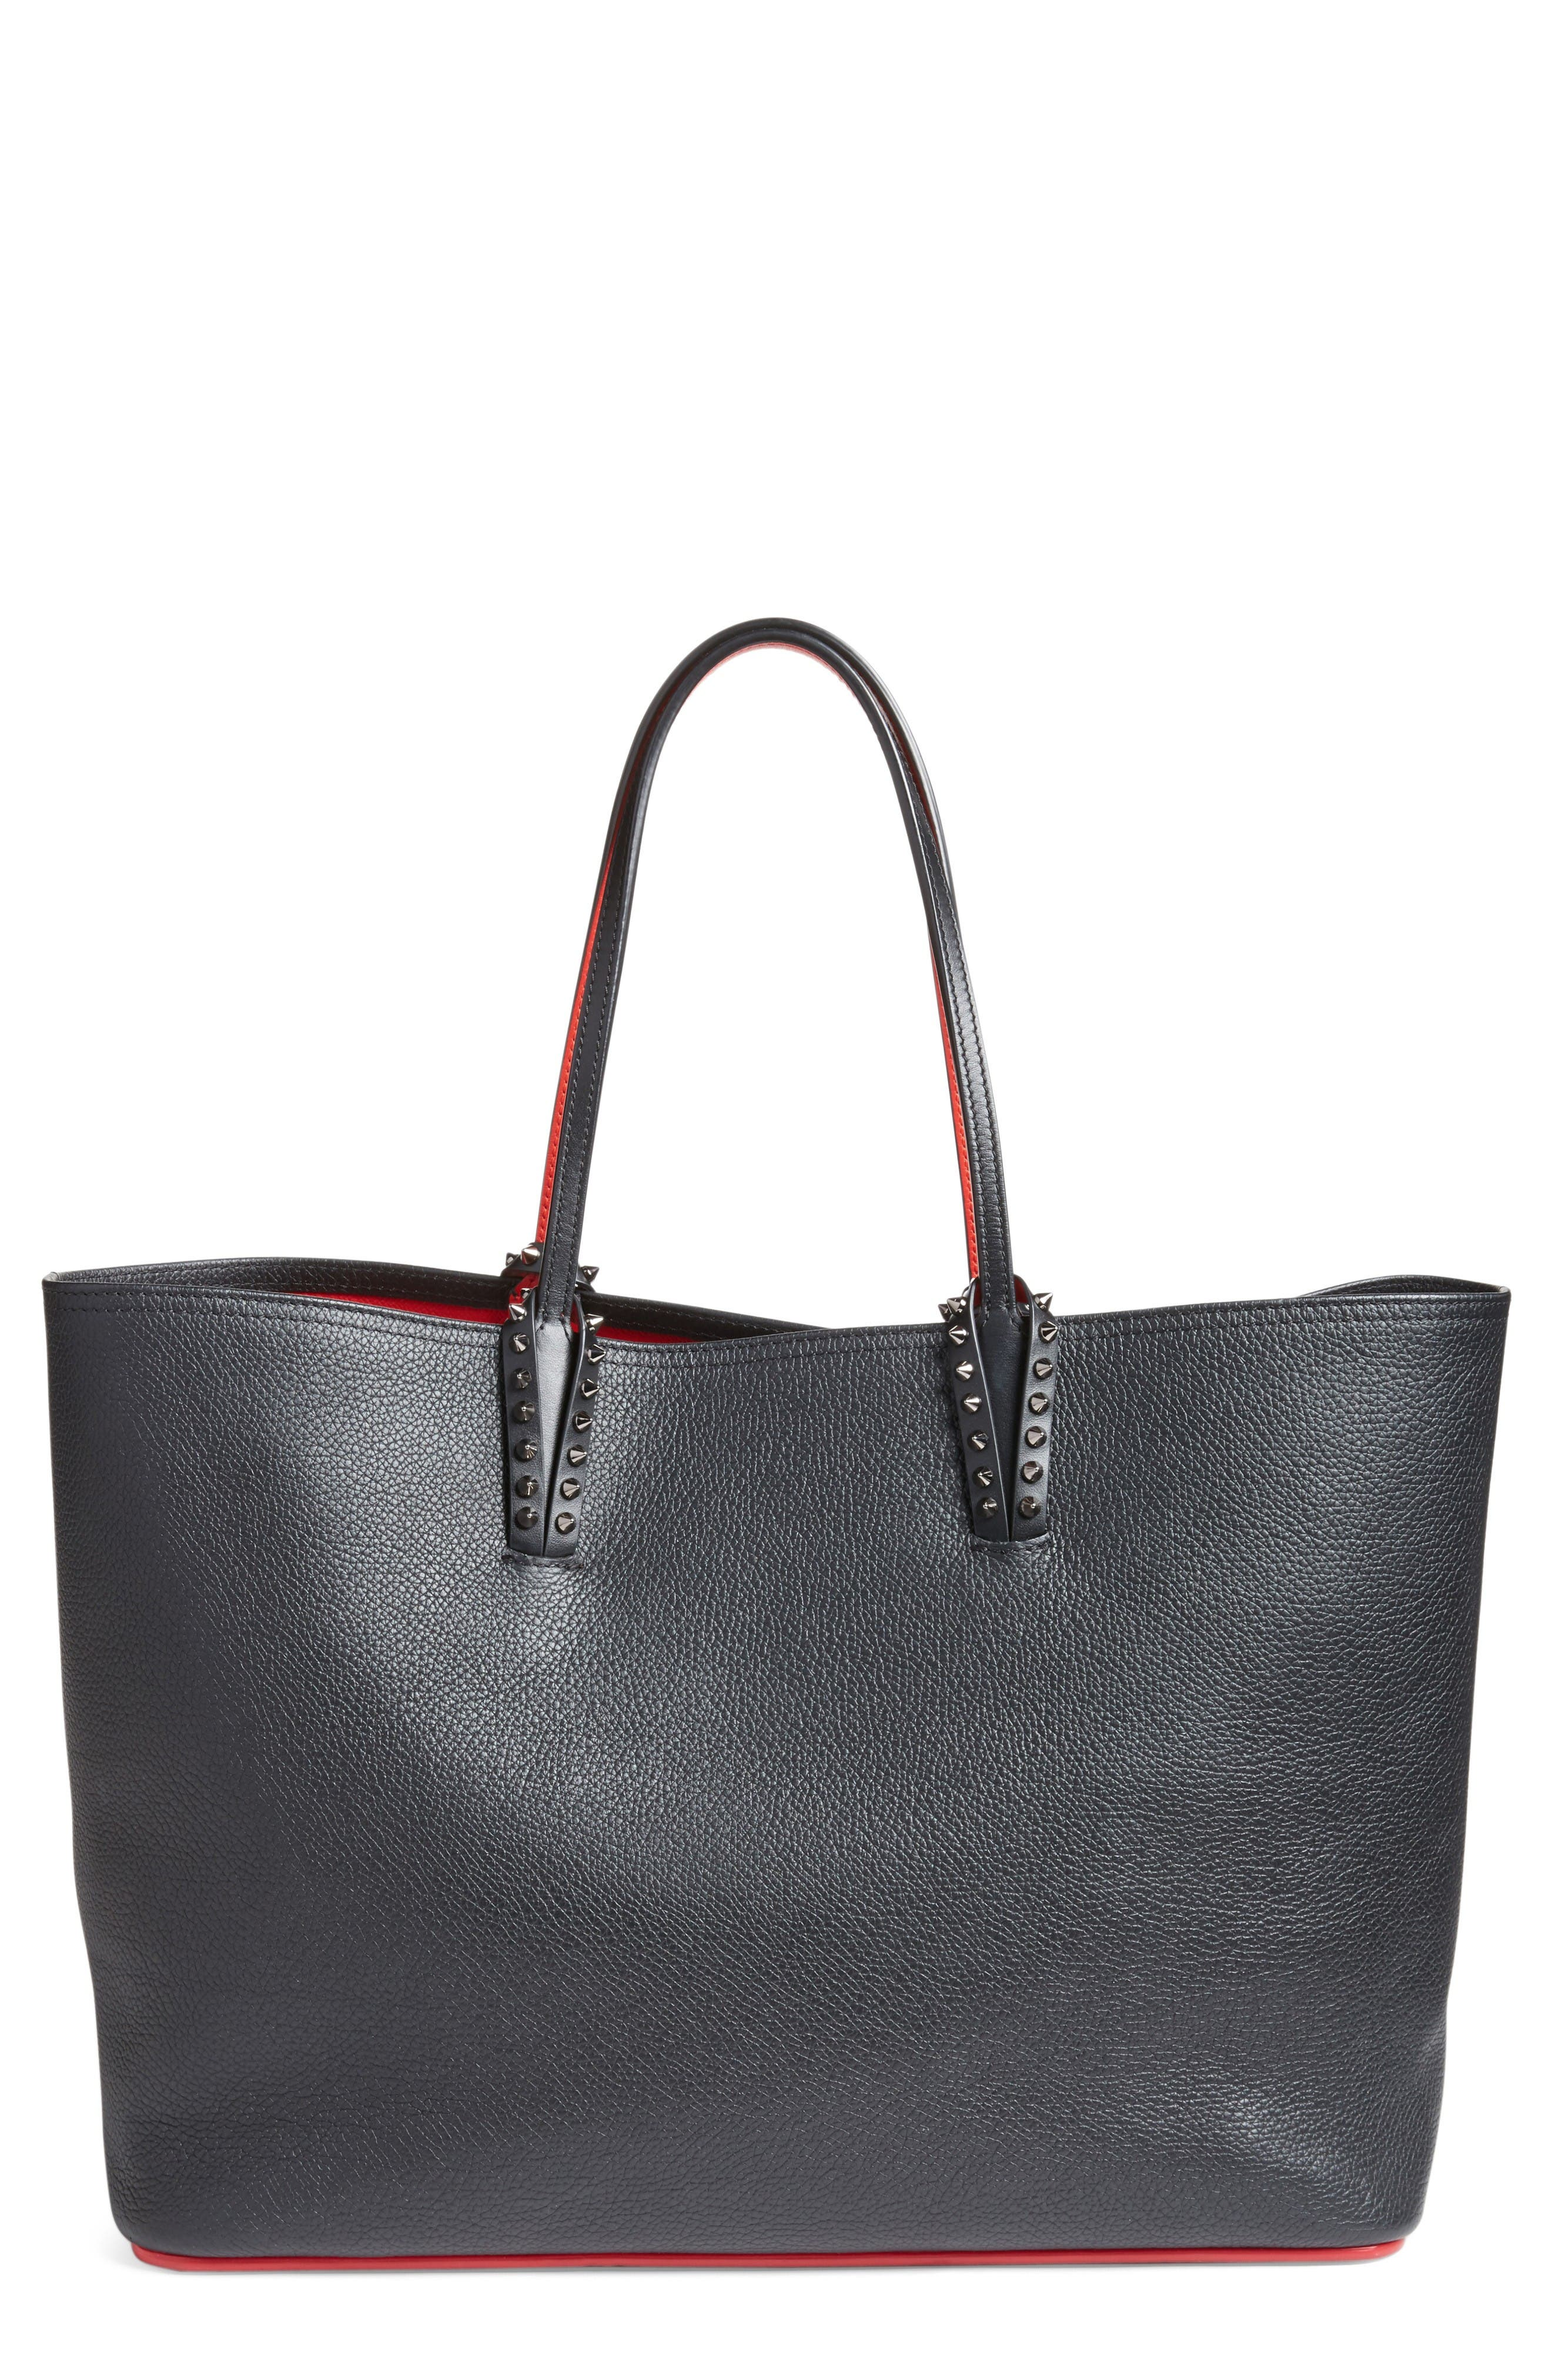 Cabata Calfskin Leather Tote,                             Main thumbnail 1, color,                             Black/Black